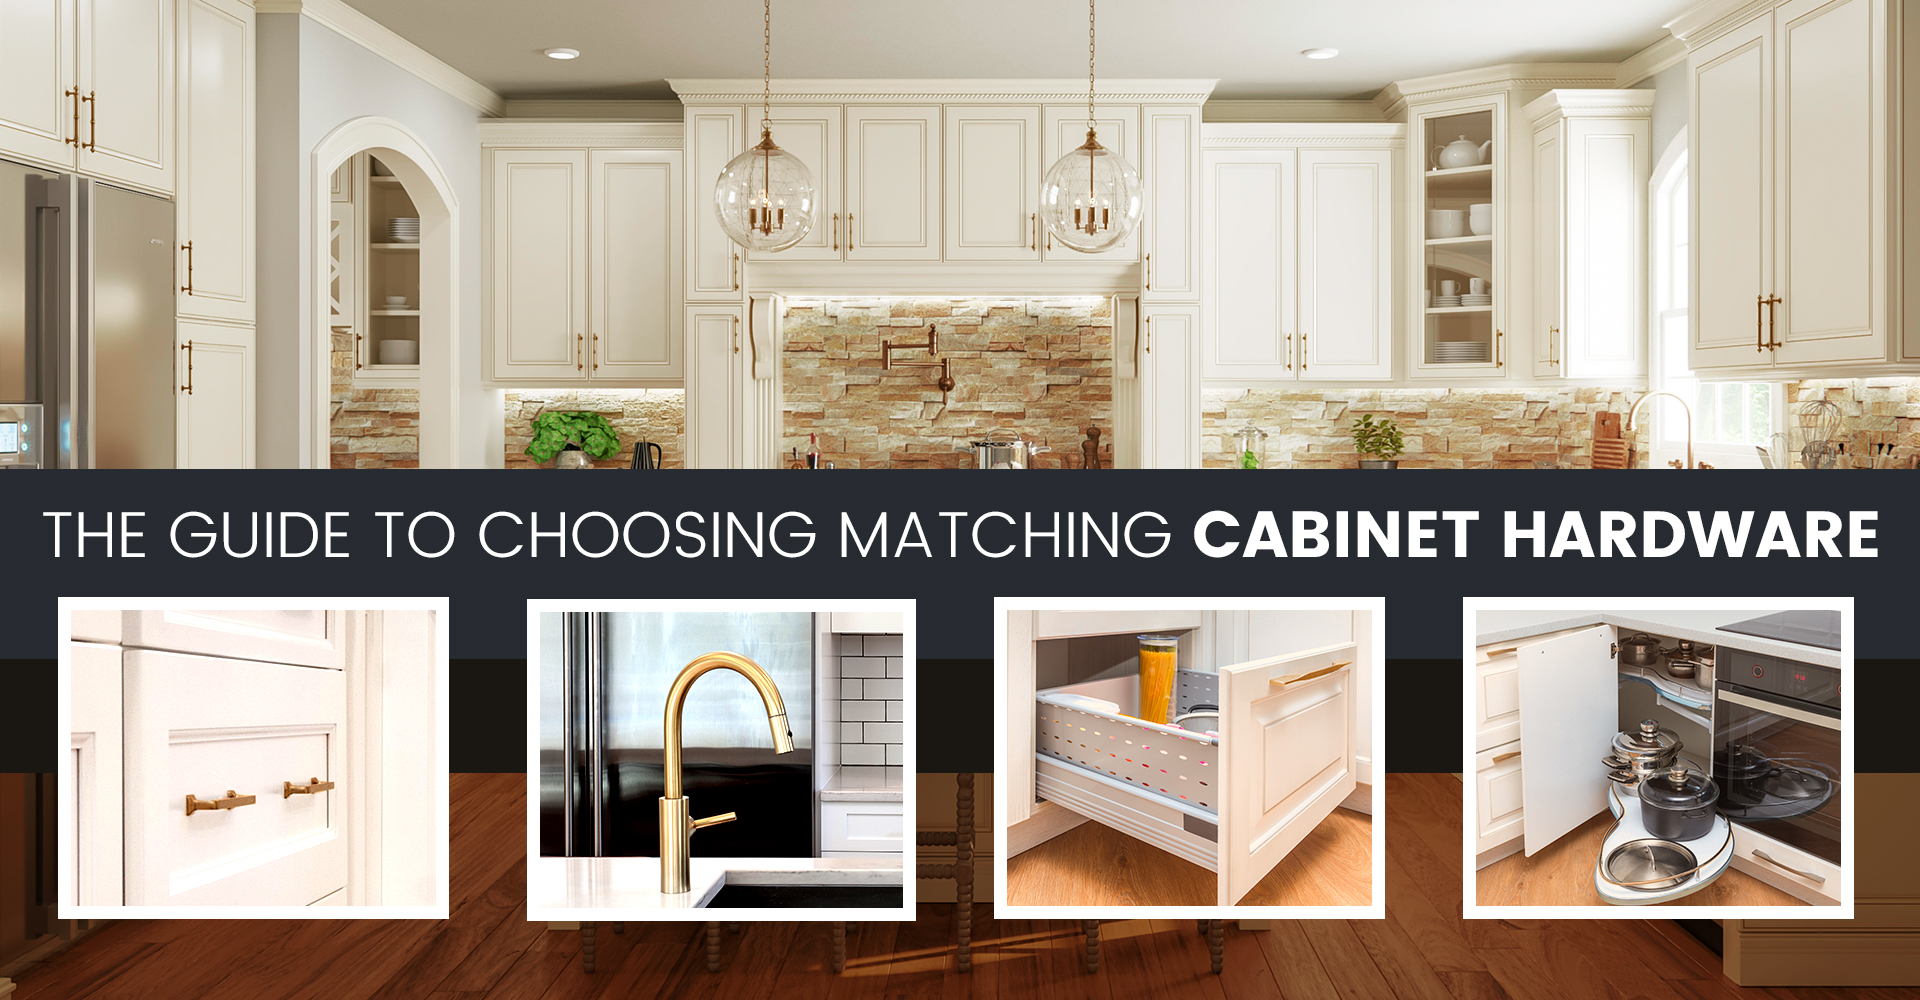 The Guide to Choosing Matching Cabinet Hardware